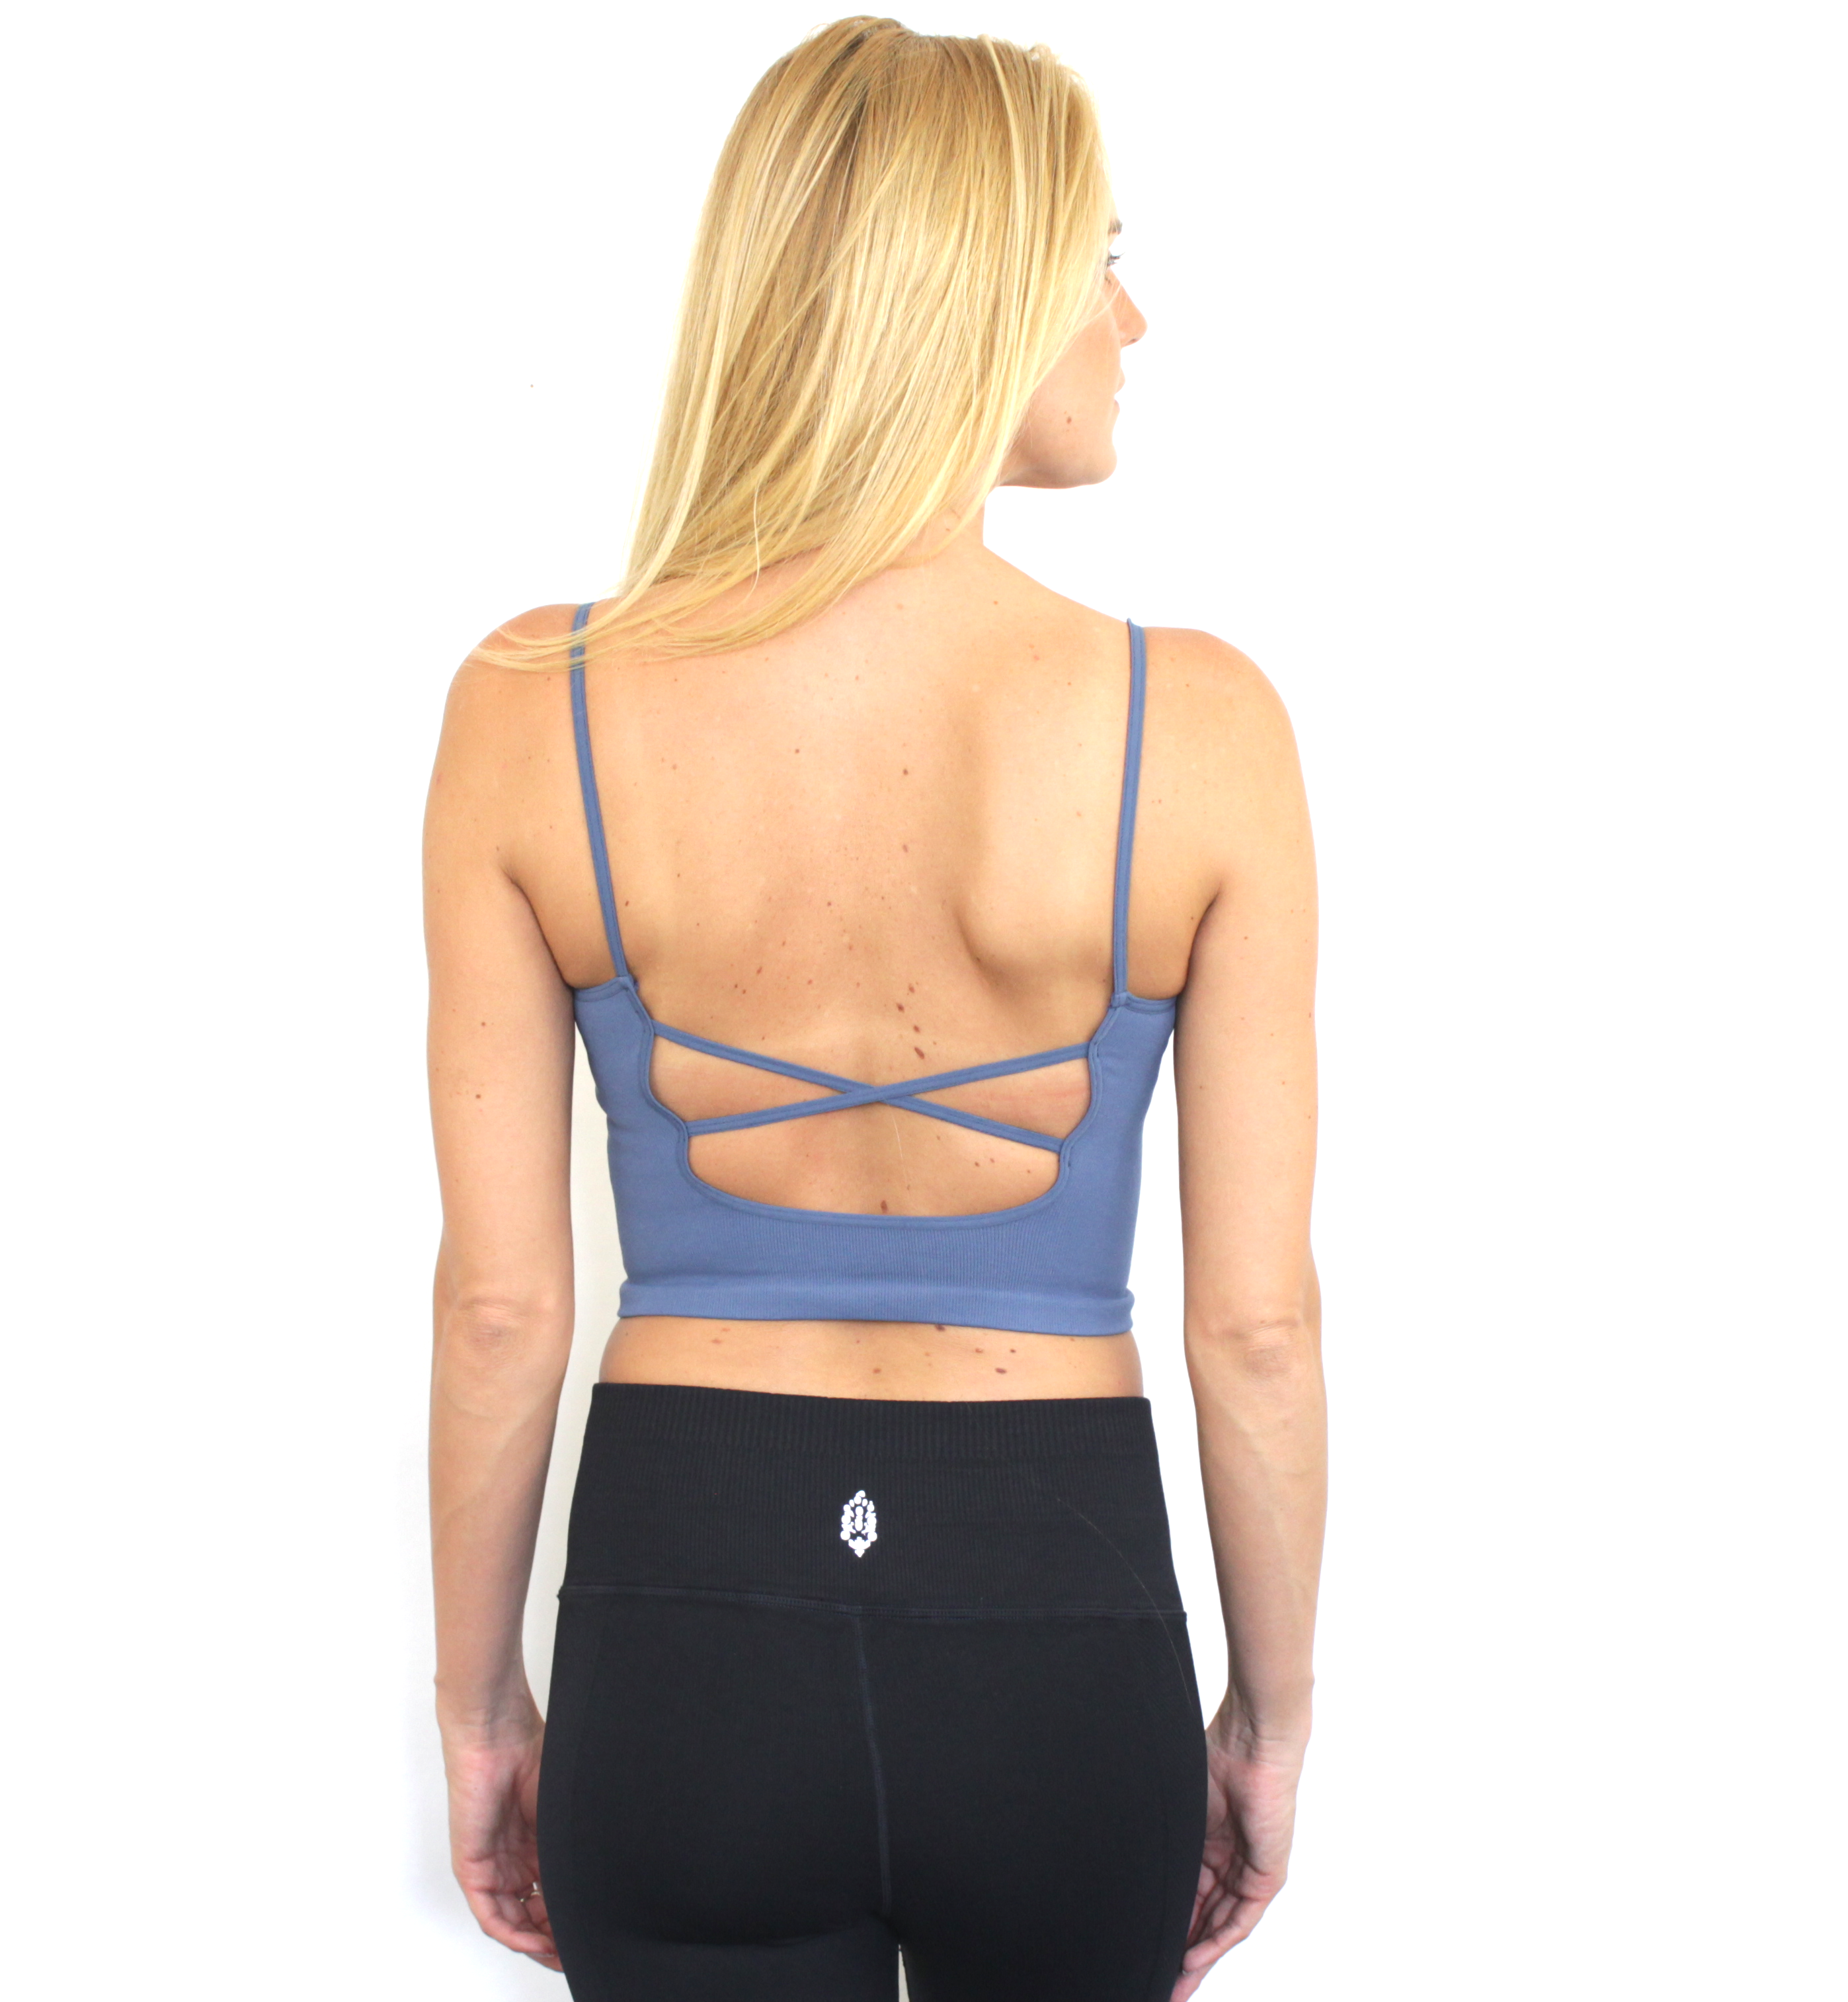 New Free People Womens Seamless Activewear Strappy Back Tighten Up Tank Top $30